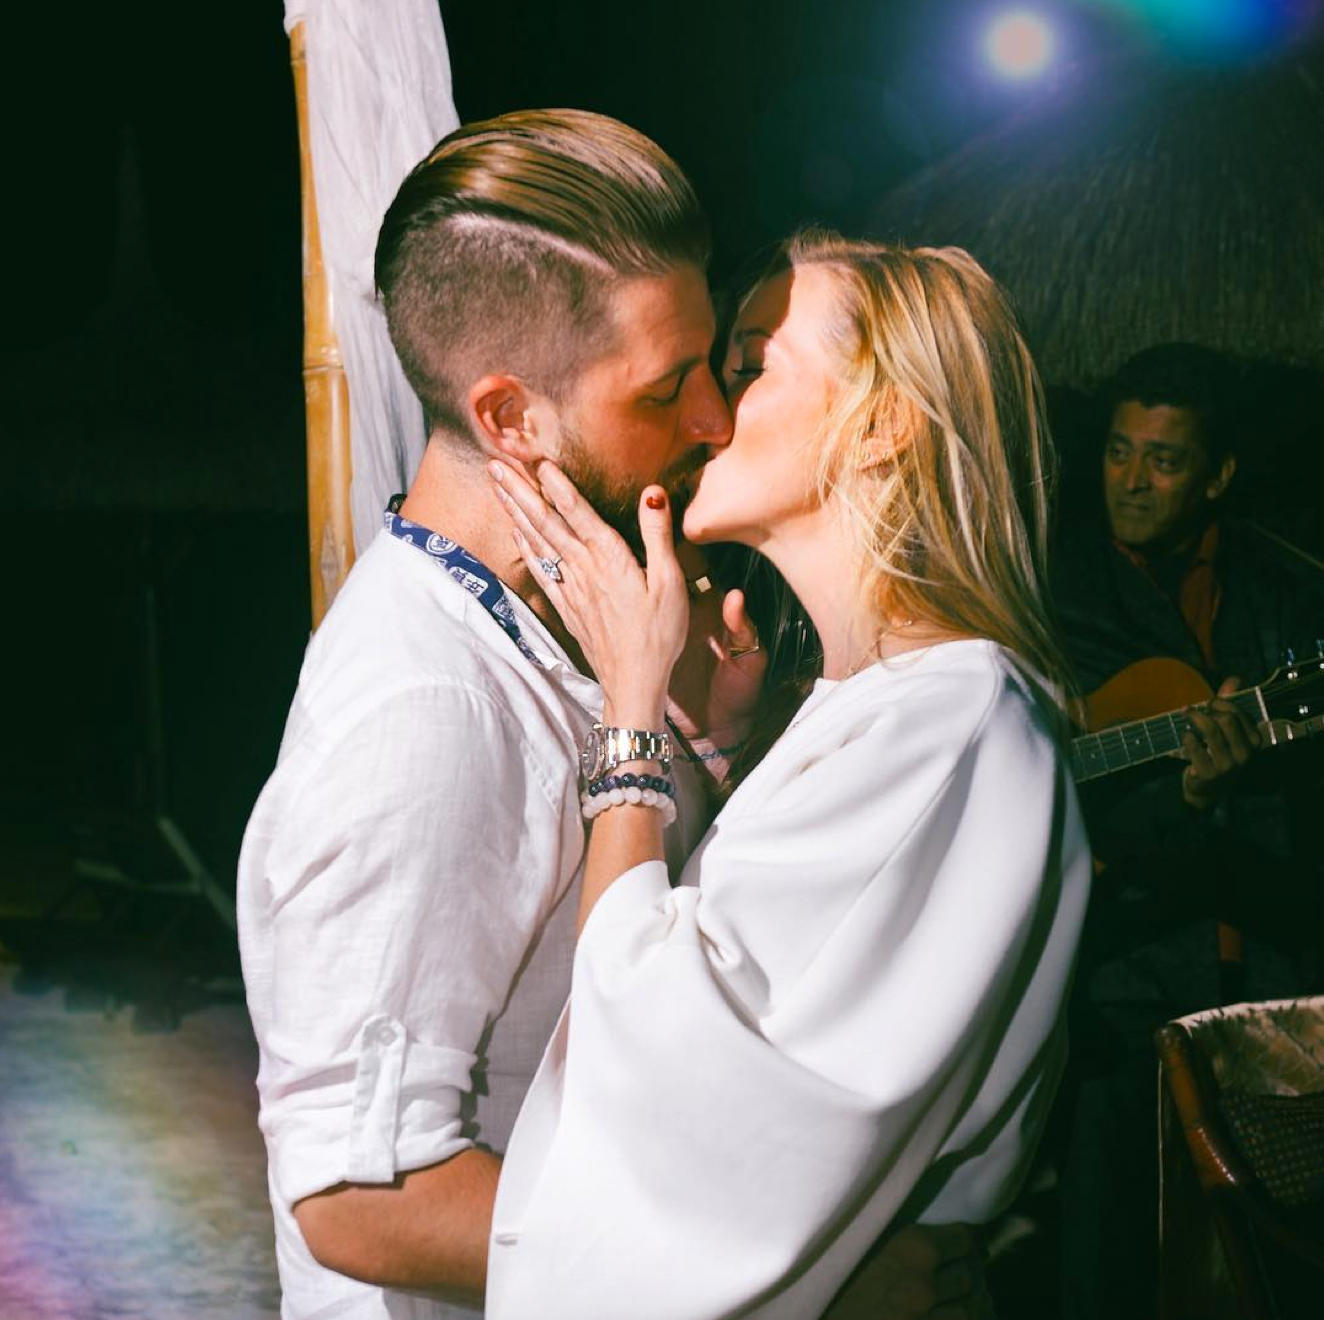 Arrow Actress Katie Cassidy Marries Matthew Rodgers in Florida Wedding Ceremony